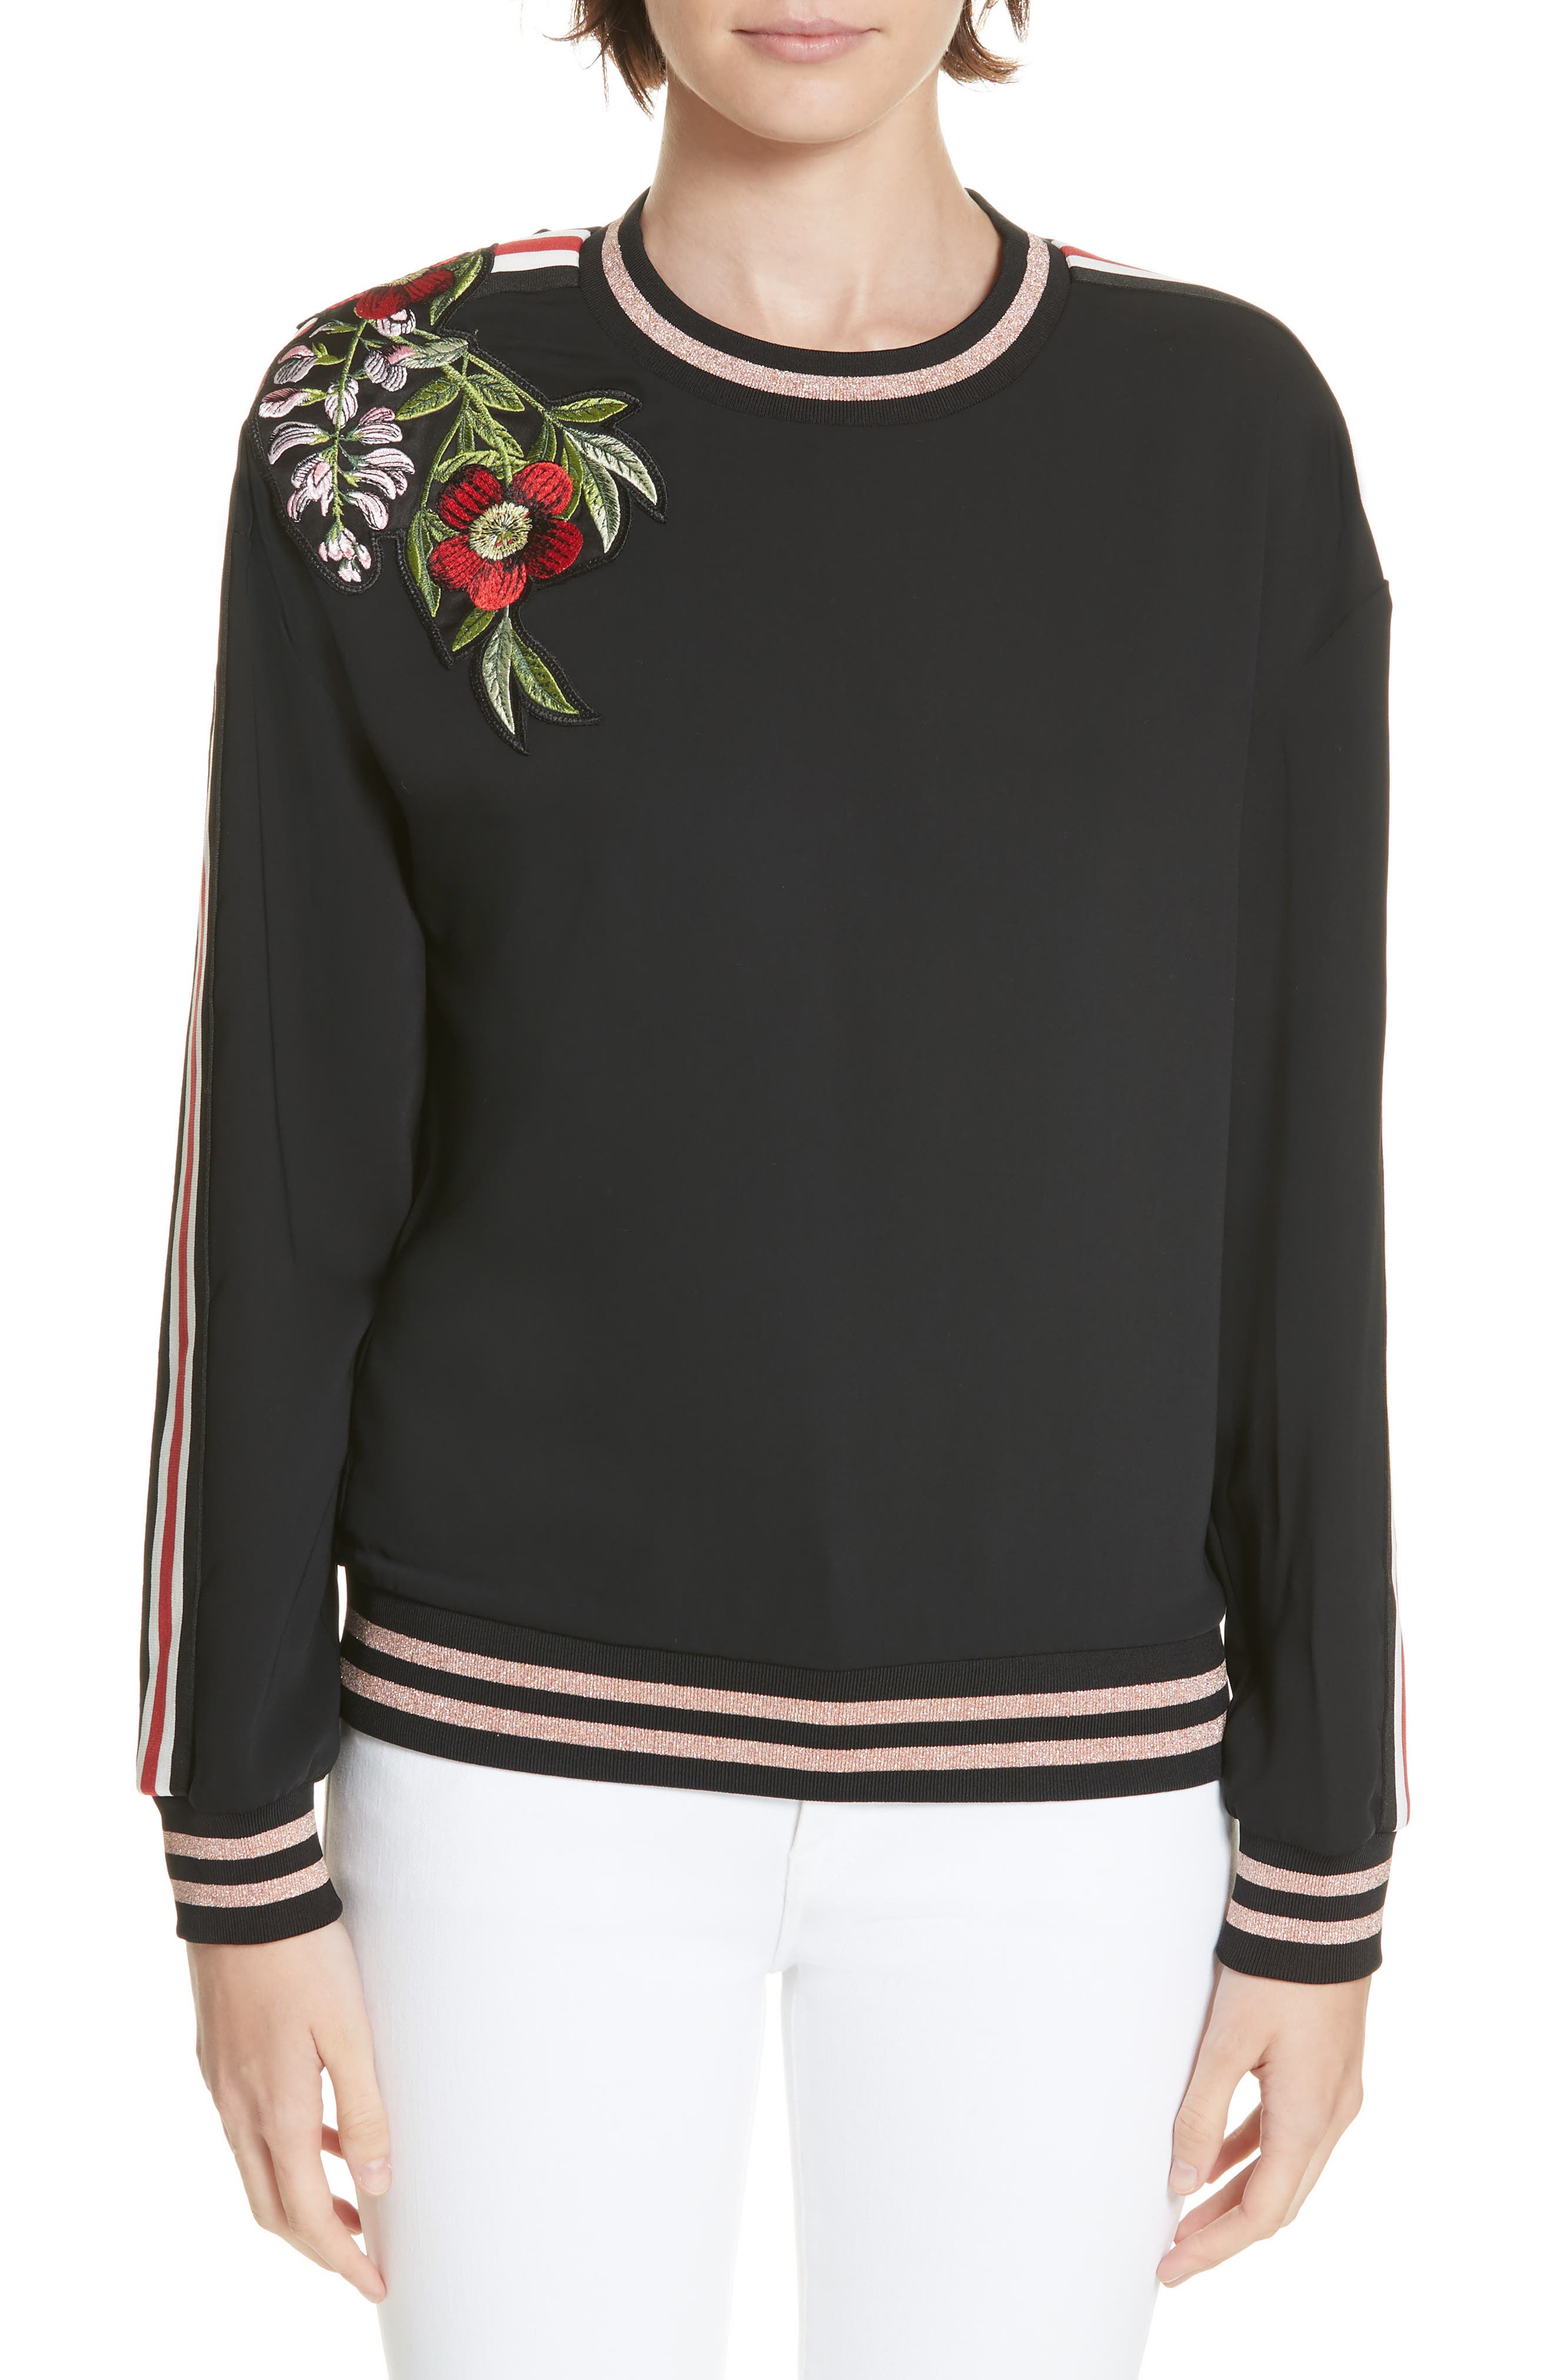 Maddeyy Embroidered Trim Top,                             Main thumbnail 1, color,                             001